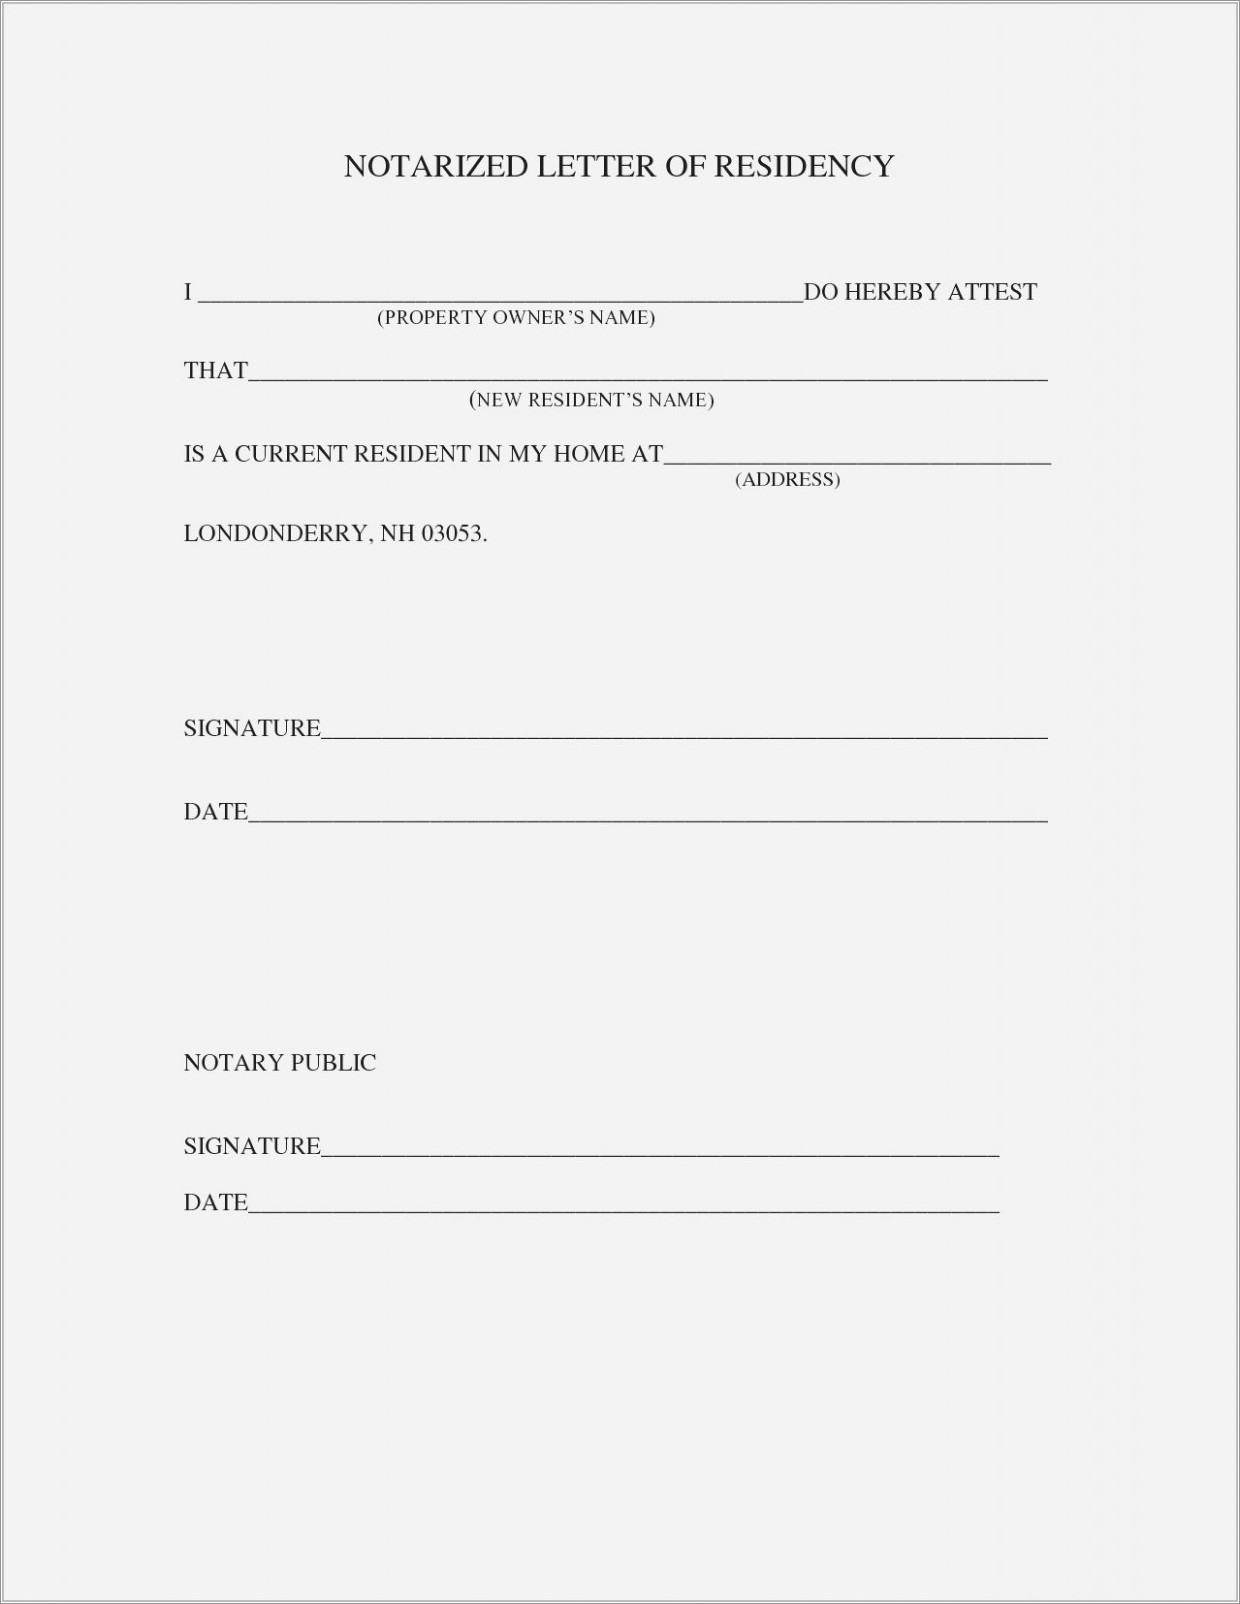 Notarized Letter Of Residency Form